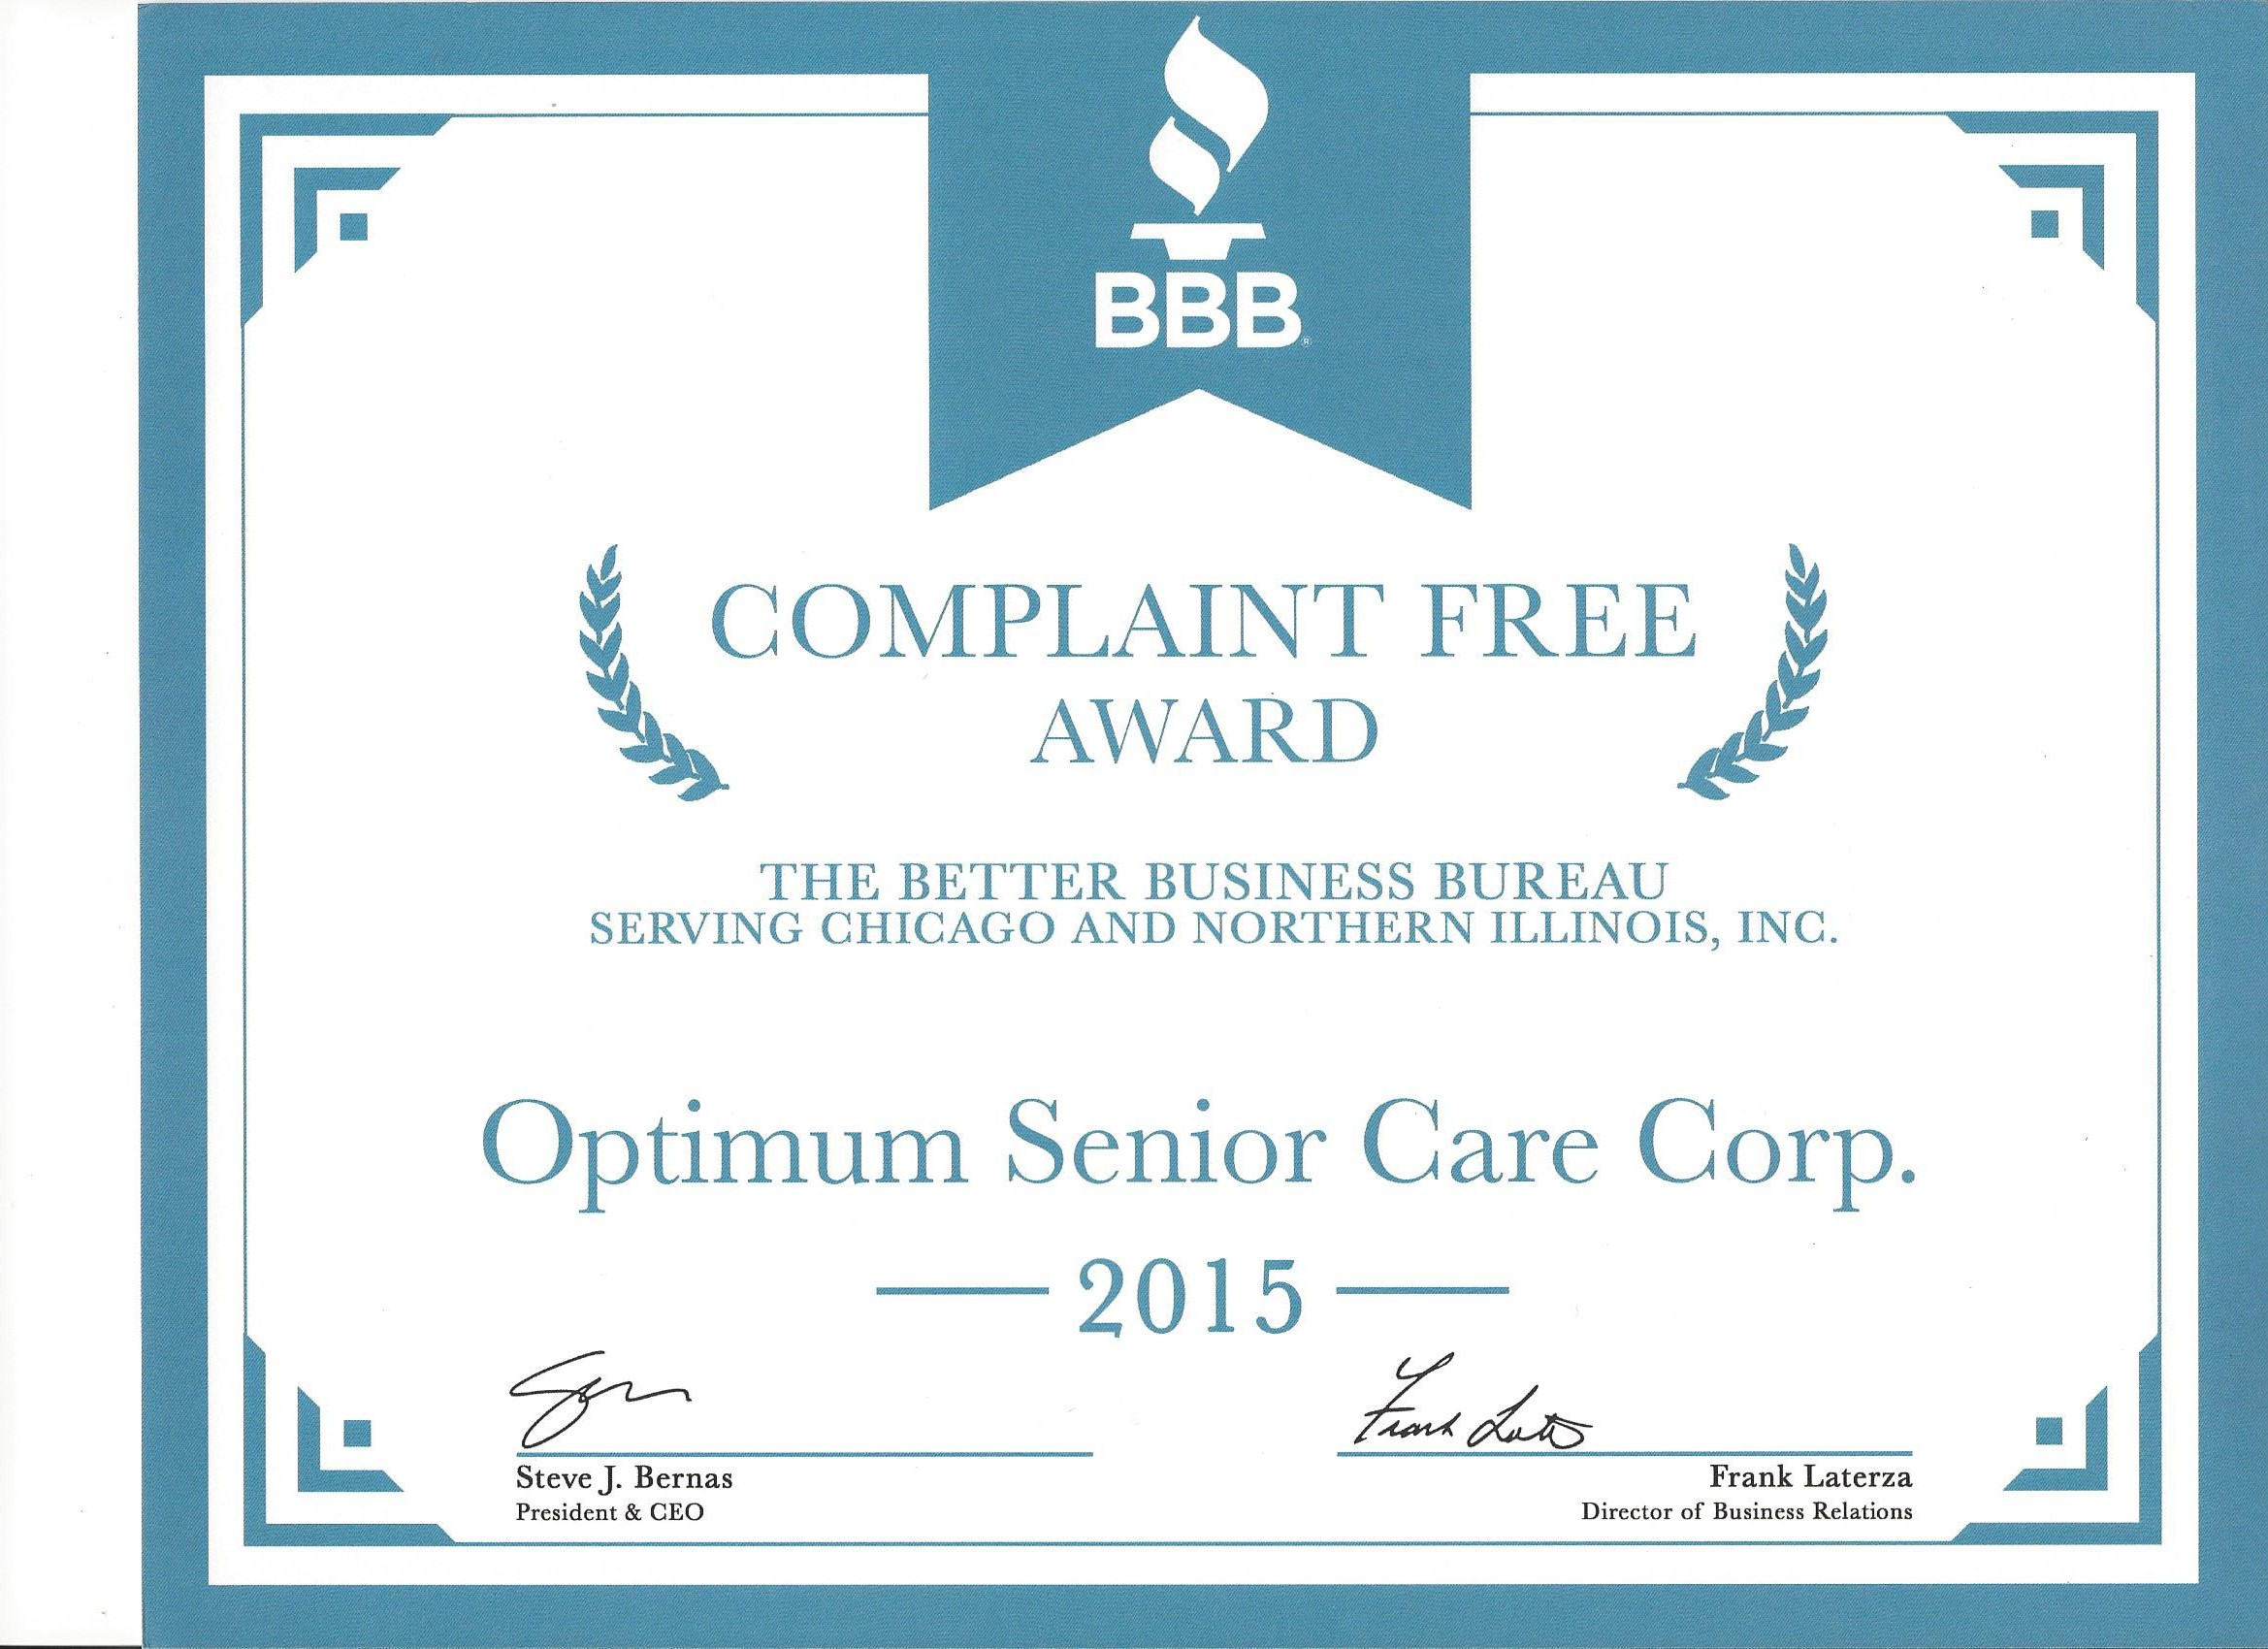 Certifications of optimum senior care department of public health idph it is insured and bonded member of the home care association of america hcaoa national private duty association xflitez Images